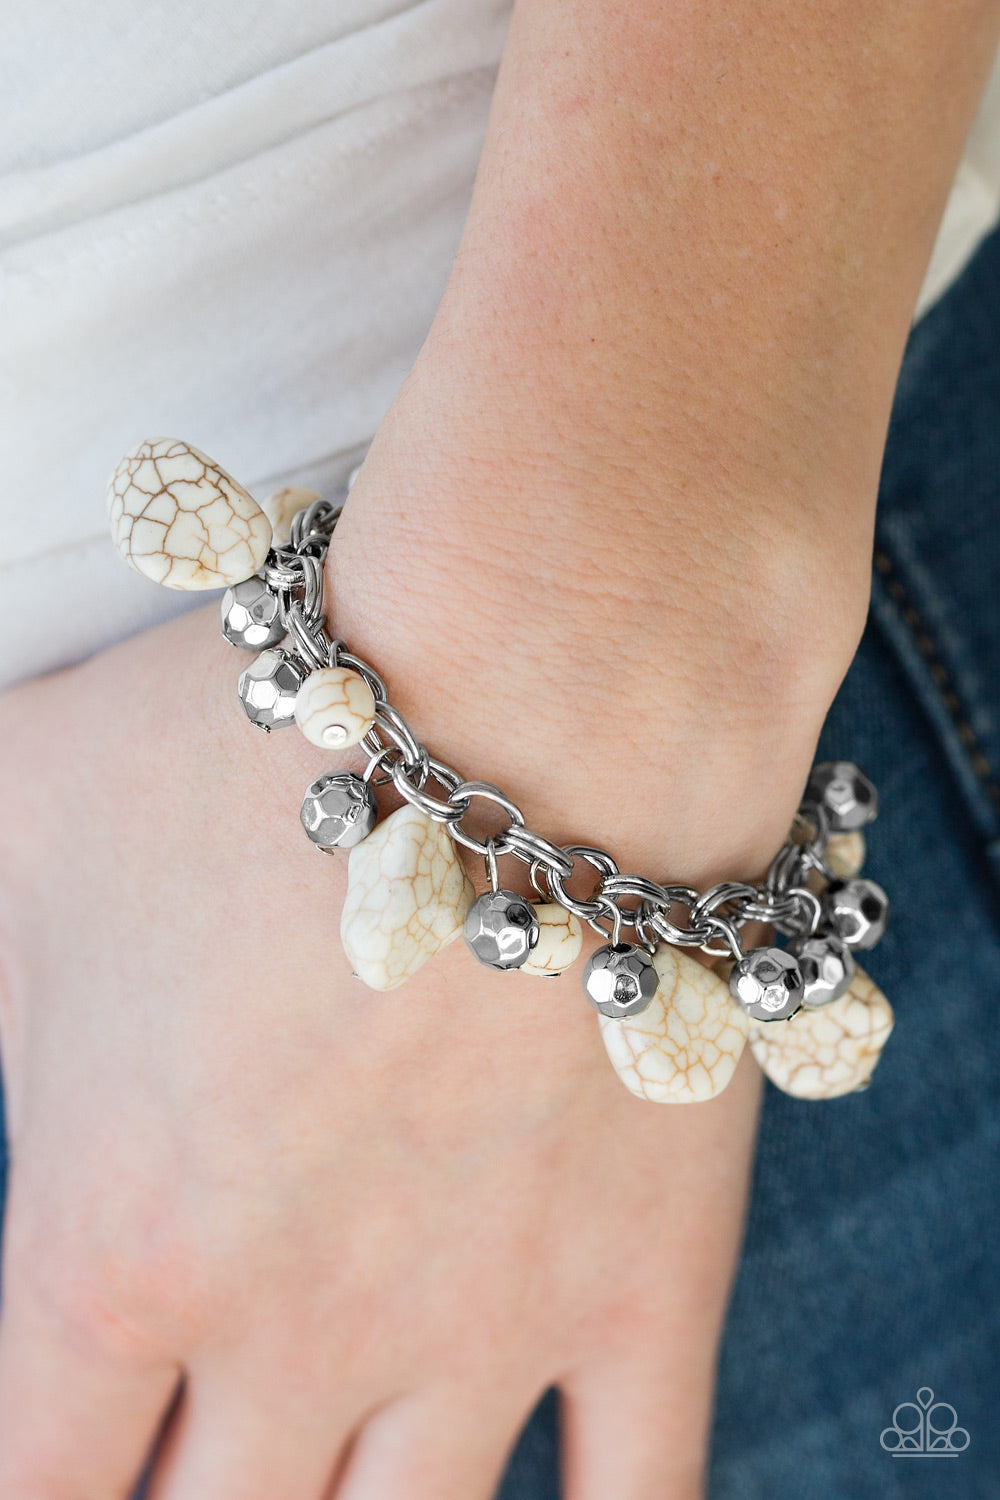 Paparazzi - Practical Paleo - White Bracelet - Classy Jewels by Linda